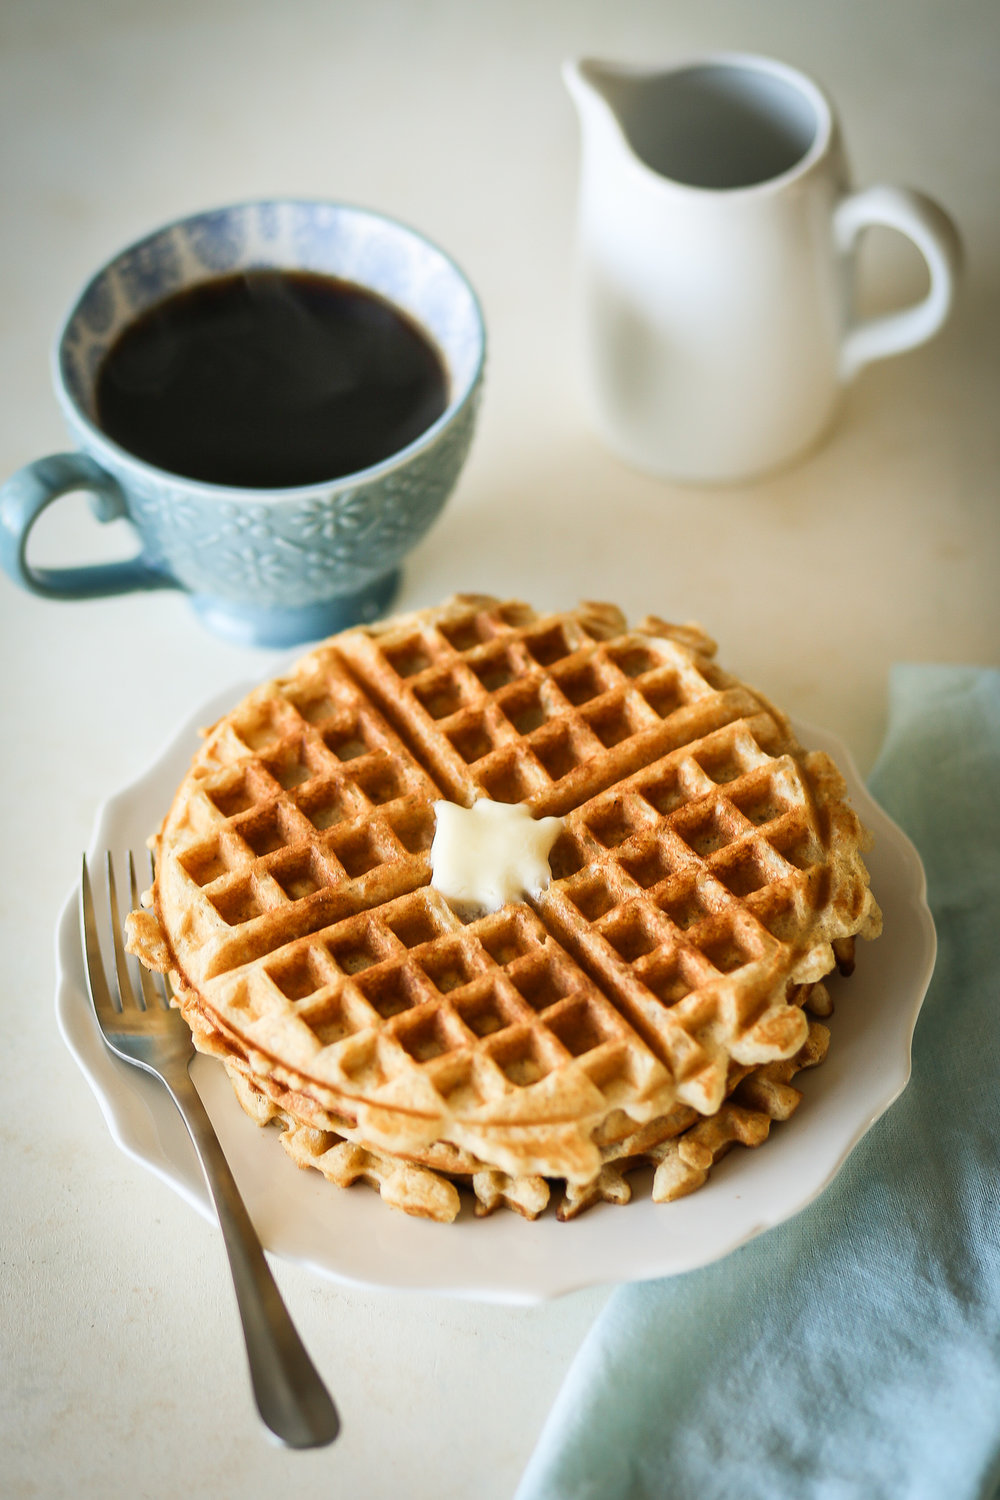 Brown Butter Vanilla Waffles | Set the Table #waffles #breakfast #recipe #wafflerecipe #brownbutter #vanilla #brunch